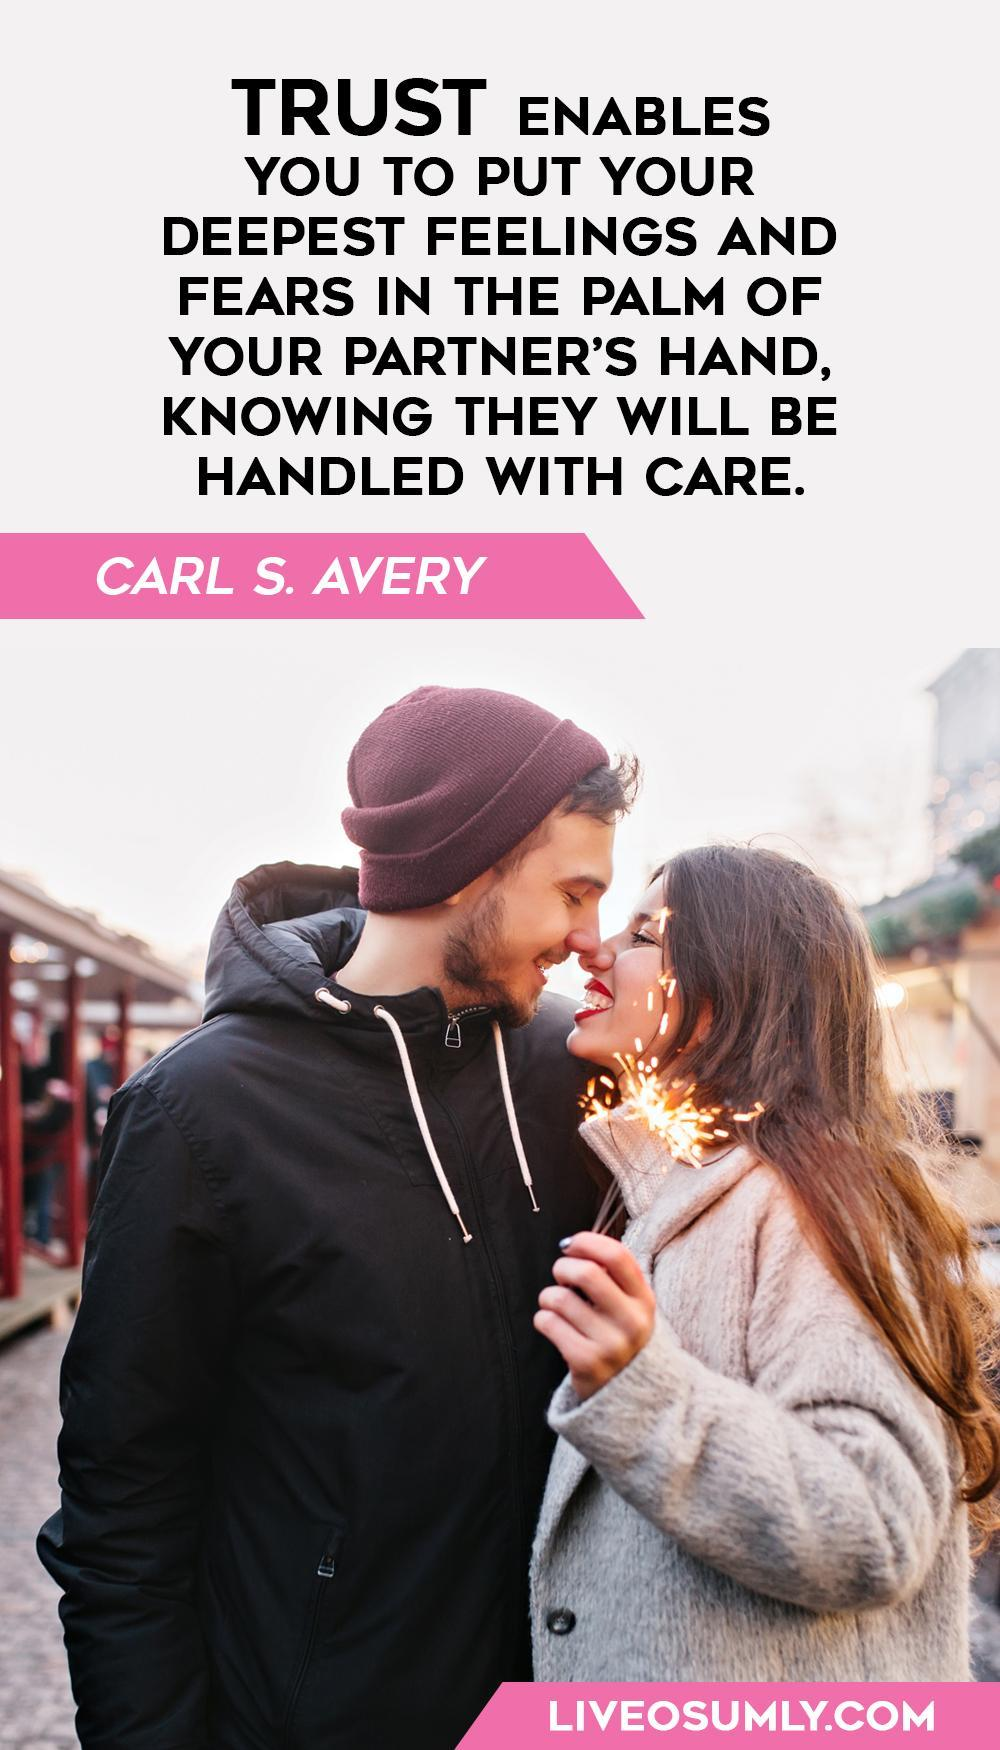 Carl S Avery one of the quotes about trust in a relationship